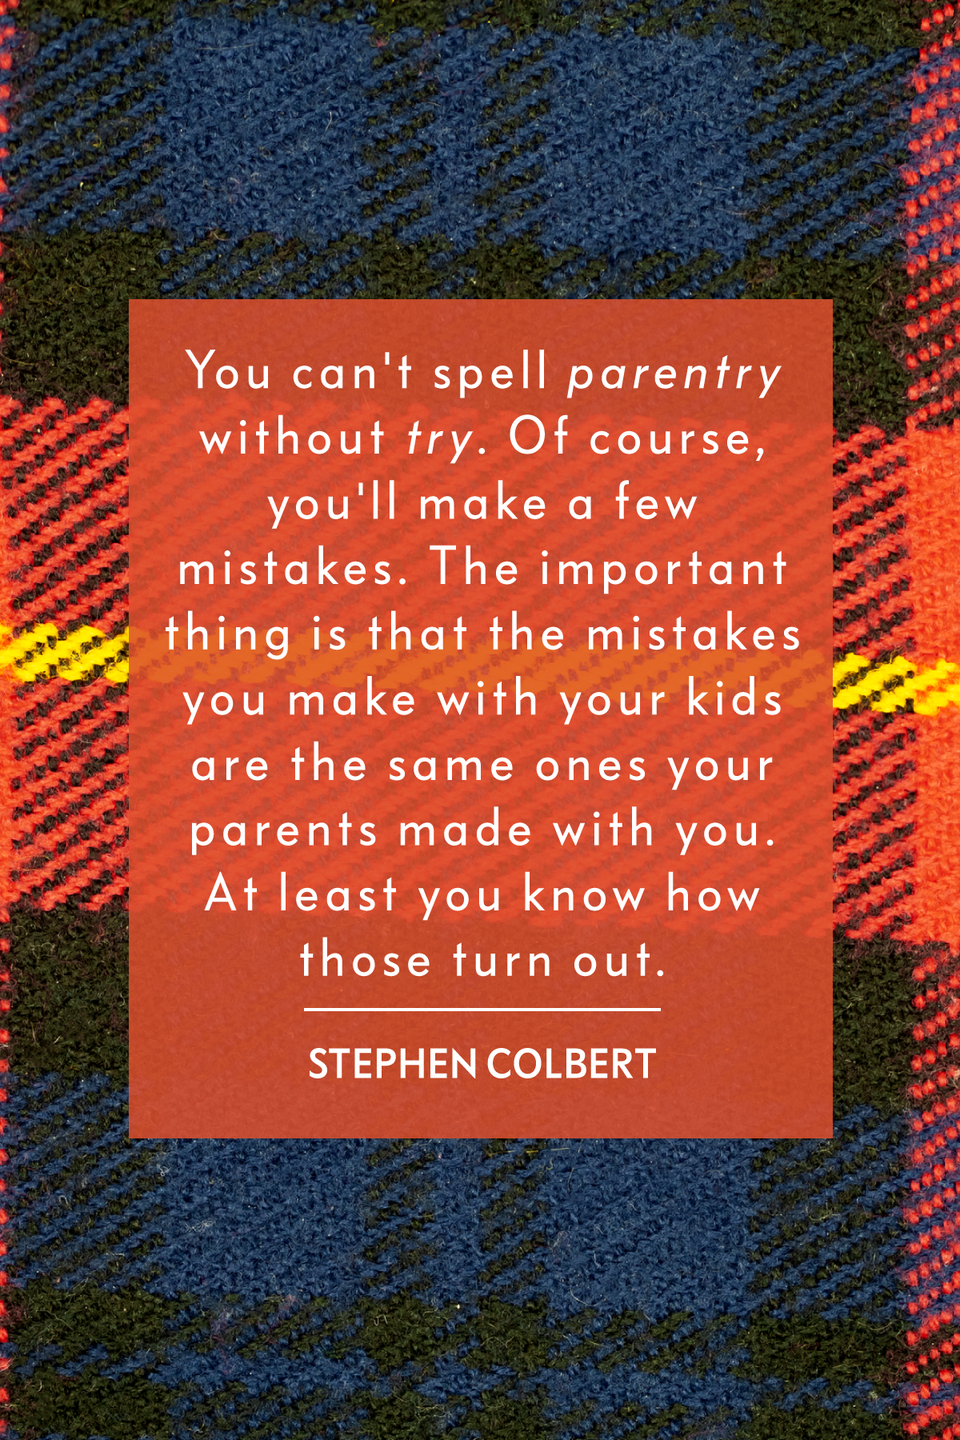 """<p>""""You can't spell """"parentry"""" without """"try."""" Of course, you'll make a few mistakes. The important thing is that the mistakes you make with <em>your</em> kids are the same ones your parents made with <em>you</em>. At least you know how those turn out,"""" the host of <em>The Late Show with Stephen Colbert </em>wrote in his book <em><a href=""""https://www.amazon.com/Am-America-So-Can-You/dp/0446582182?tag=syn-yahoo-20&ascsubtag=%5Bartid%7C2139.g.32925371%5Bsrc%7Cyahoo-us"""" rel=""""nofollow noopener"""" target=""""_blank"""" data-ylk=""""slk:I Am America"""" class=""""link rapid-noclick-resp"""">I Am America</a>.</em></p>"""